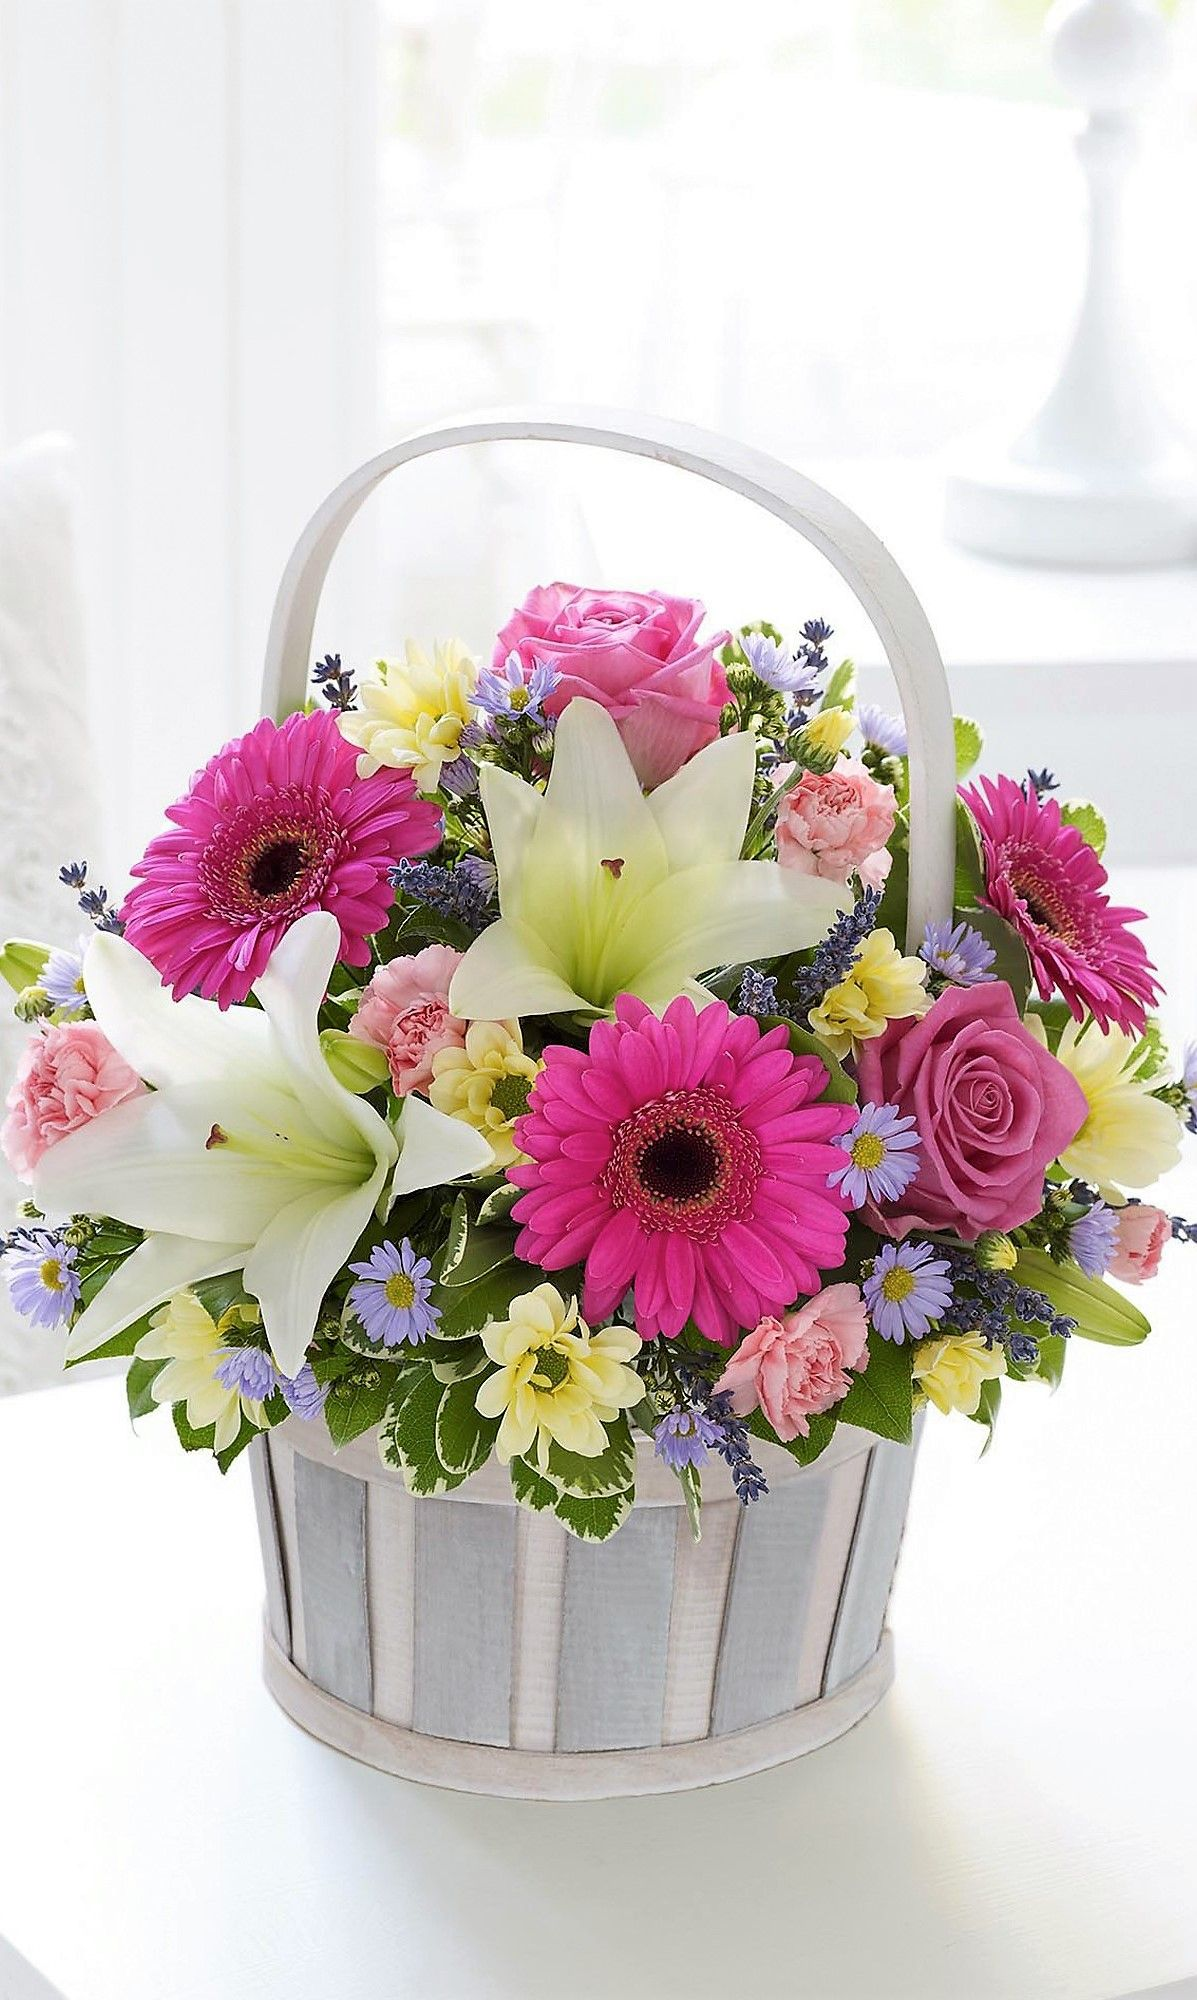 Basket flower arrangements image by We're Two Pinners. on